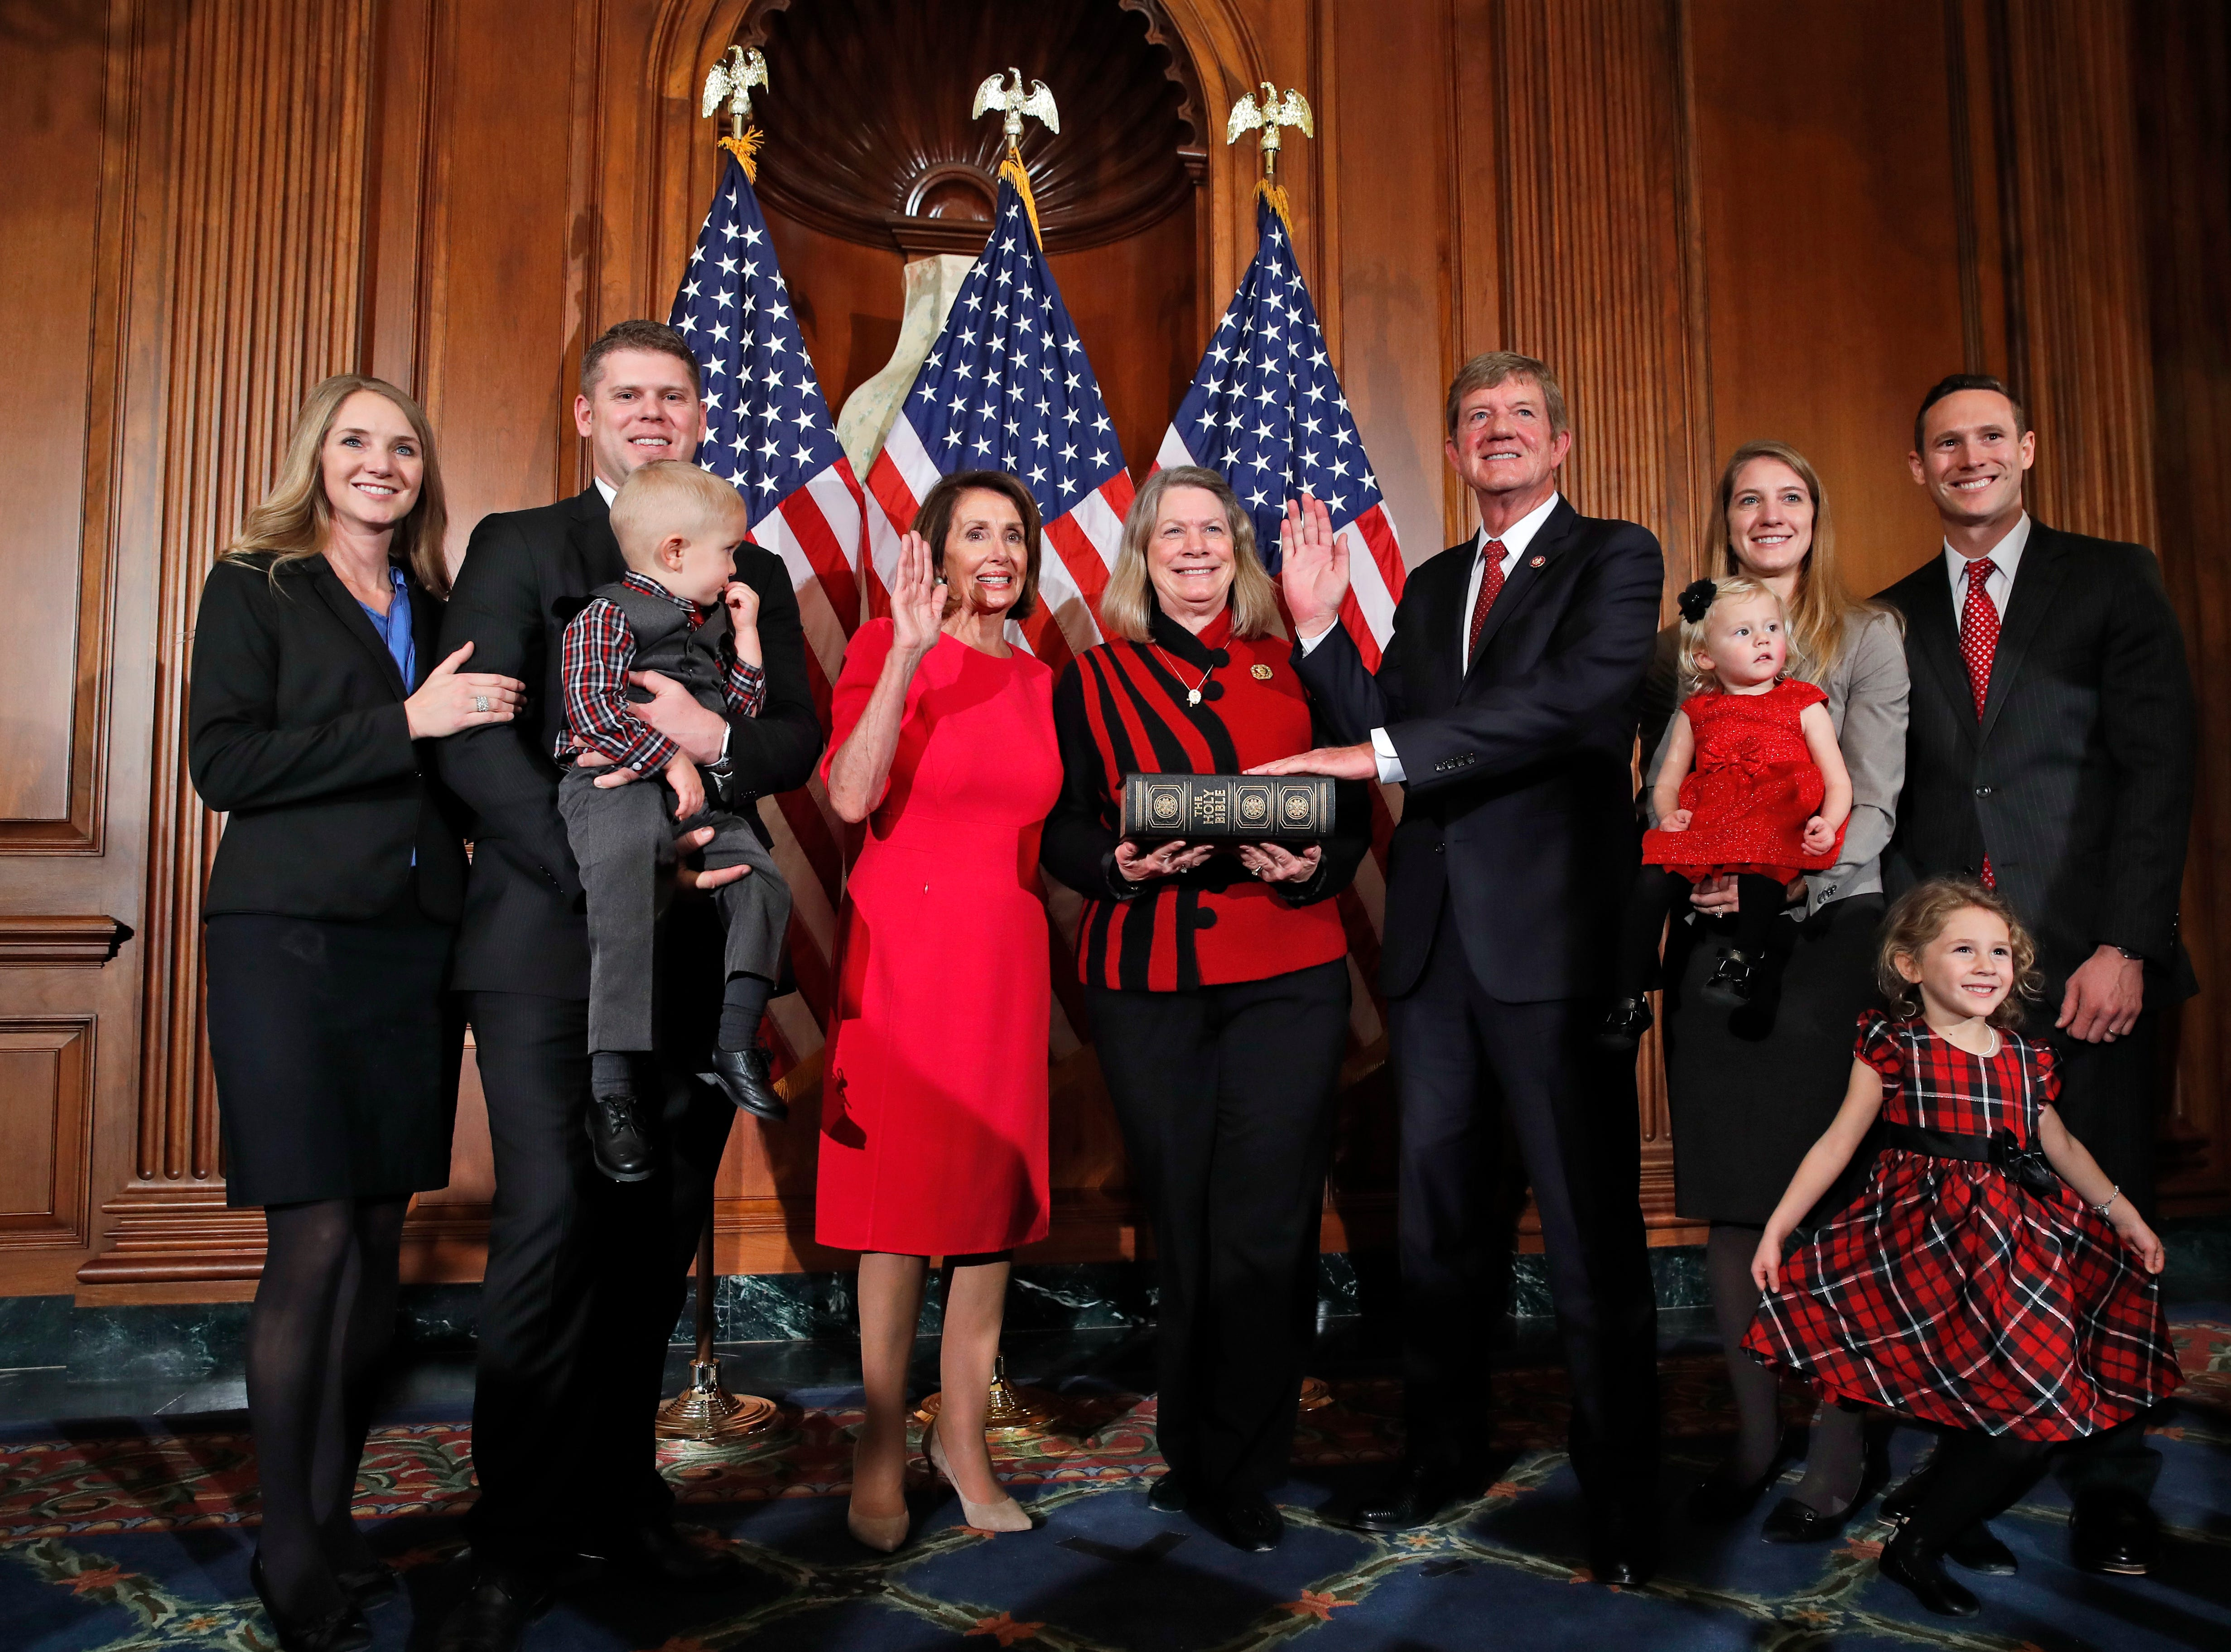 House Speaker Nancy Pelosi of Calif., left, poses during a ceremonial swearing-in with Rep. Scott Tipton, R-Colo., third from right, on Capitol Hill, Thursday, Jan. 3, 2019 in Washington during the opening session of the 116th Congress.. (AP Photo/Alex Brandon)